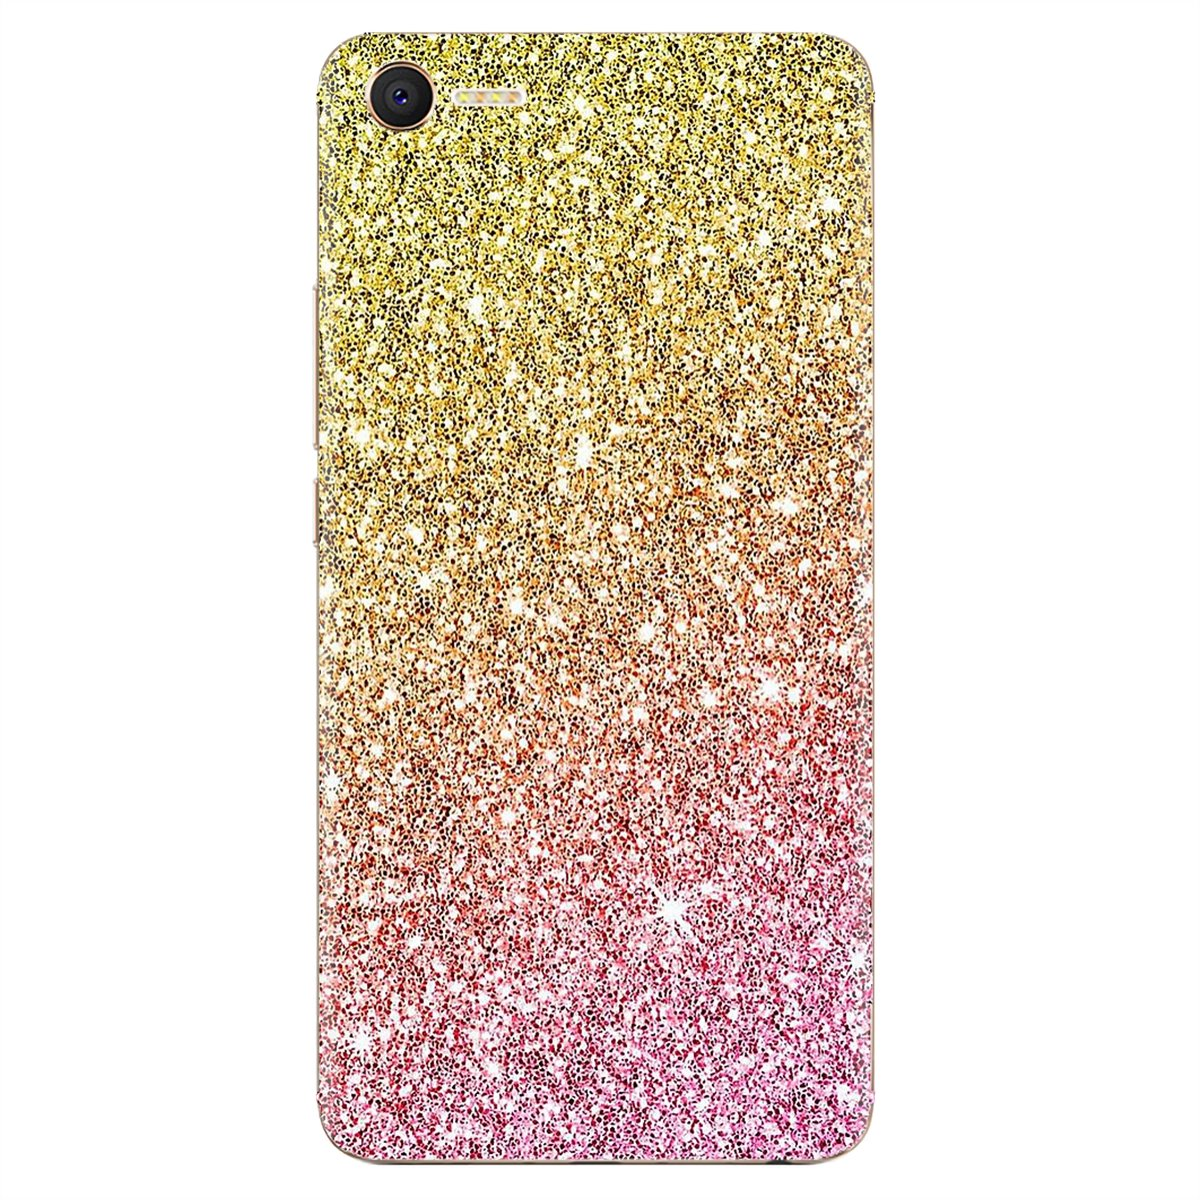 For Huawei Nova 2 3 2i 3i Y6 Y7 Y9 Prime Pro GR3 GR5 2017 2018 2019 Y5II Y6II Pink gold glitter sparkles Buy Silicone Phone Case(China)